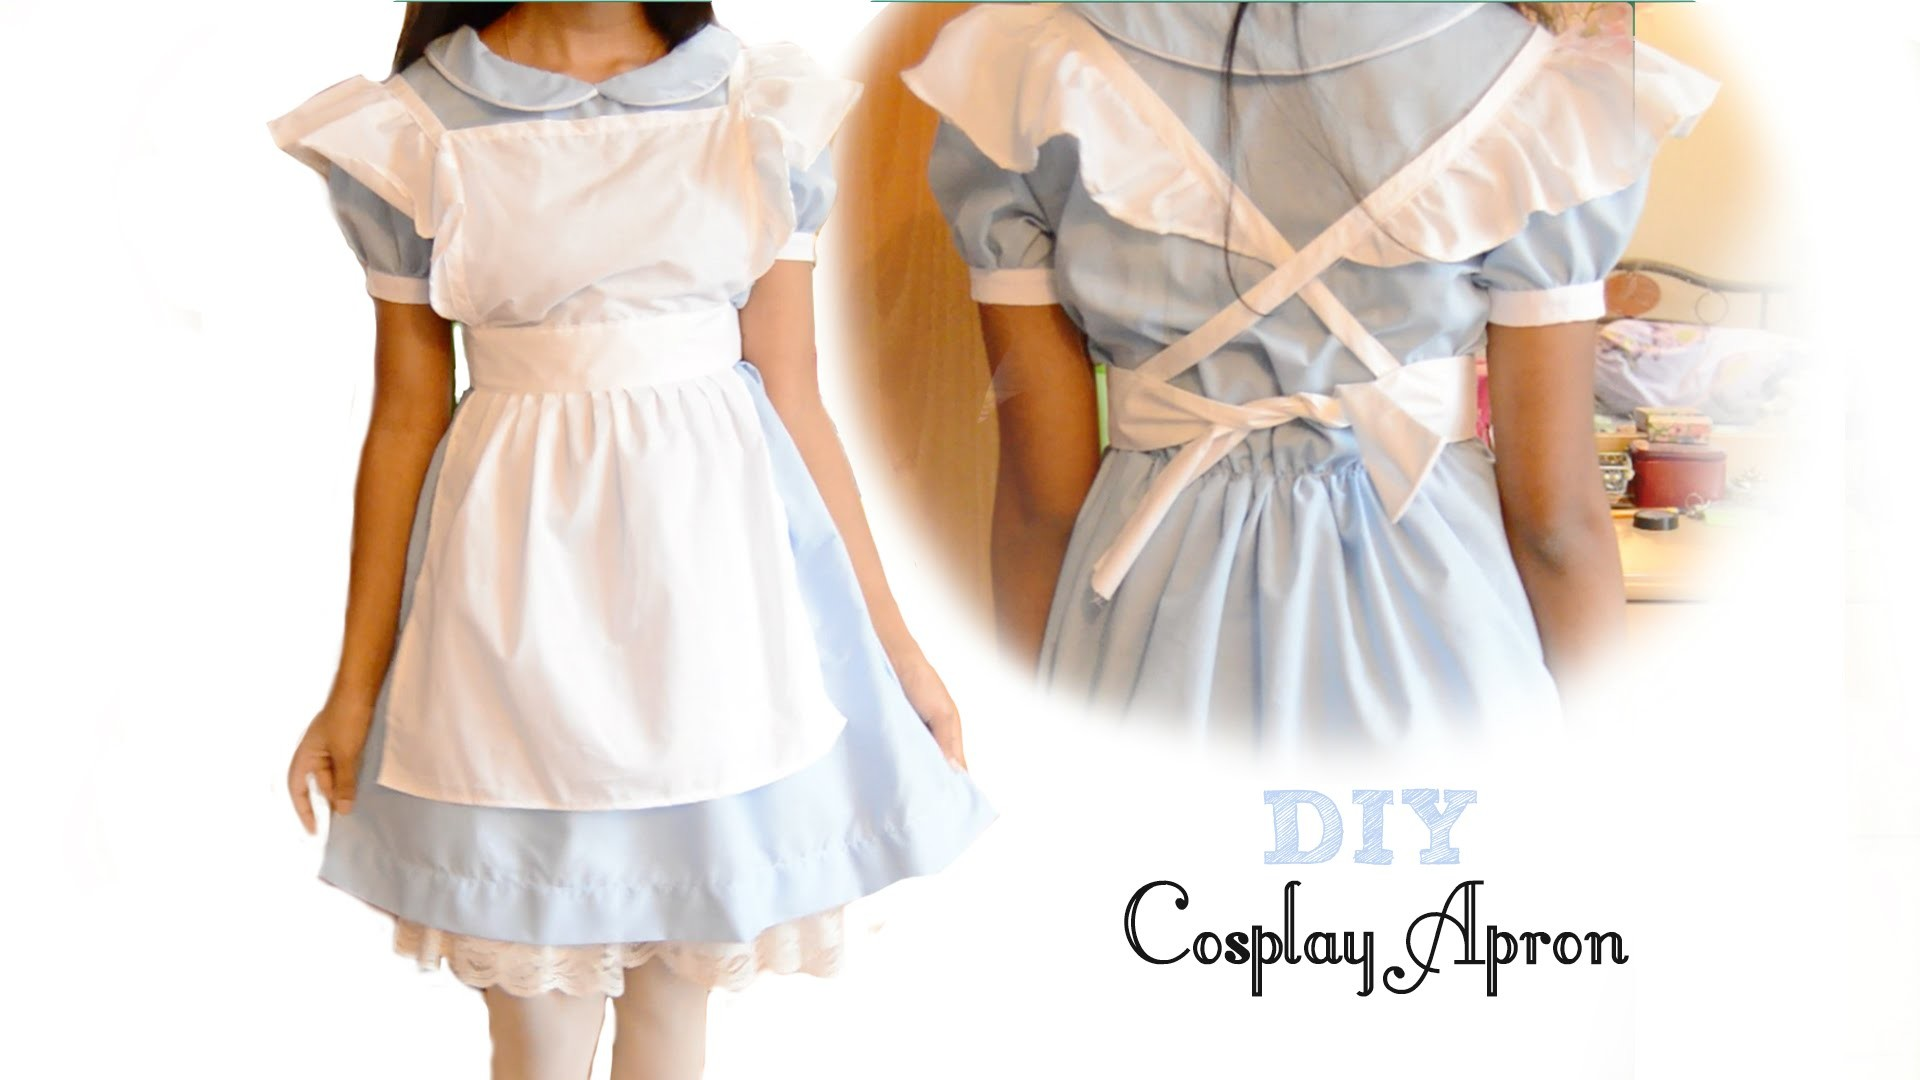 DIY Cute Cosplay Apron